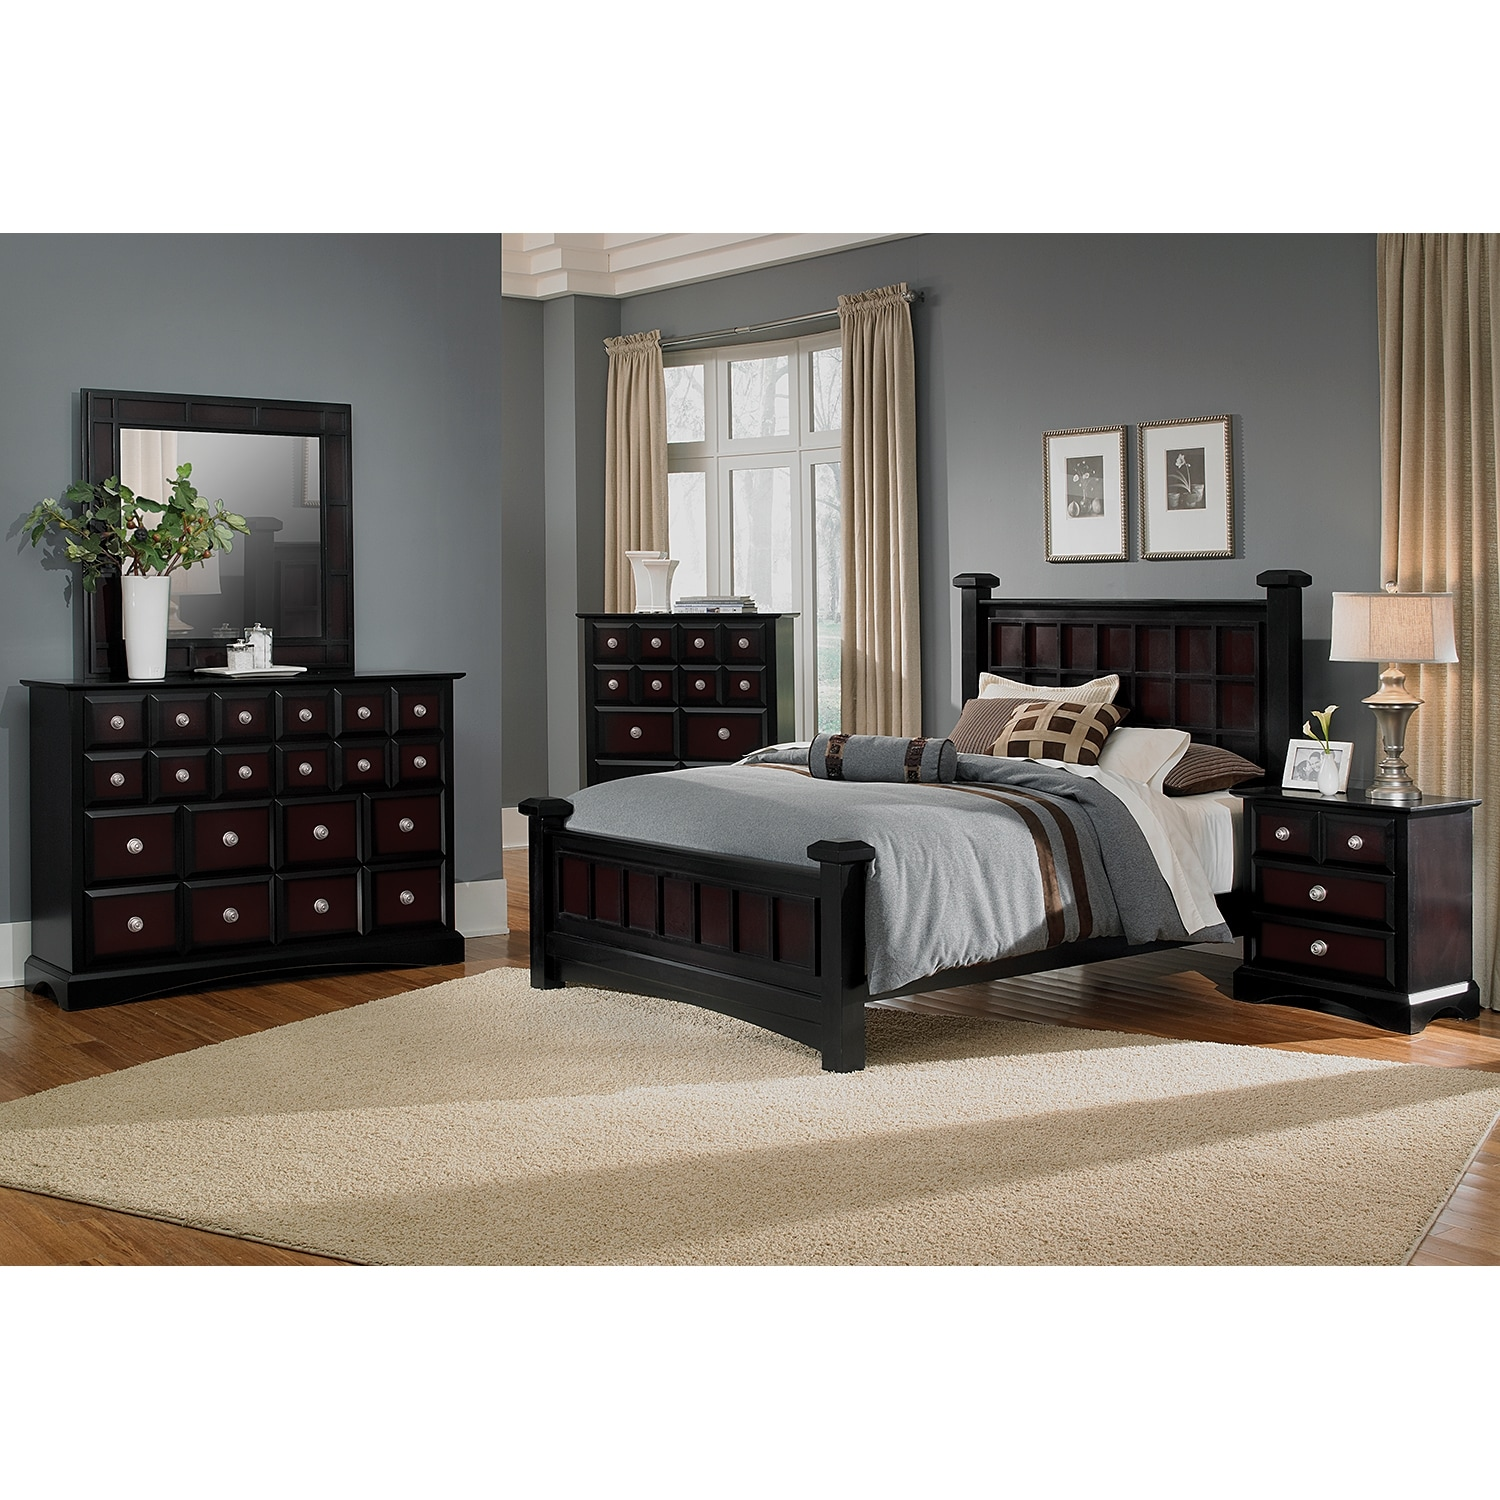 Winchester Master Suite: Black And Burnished Merlot